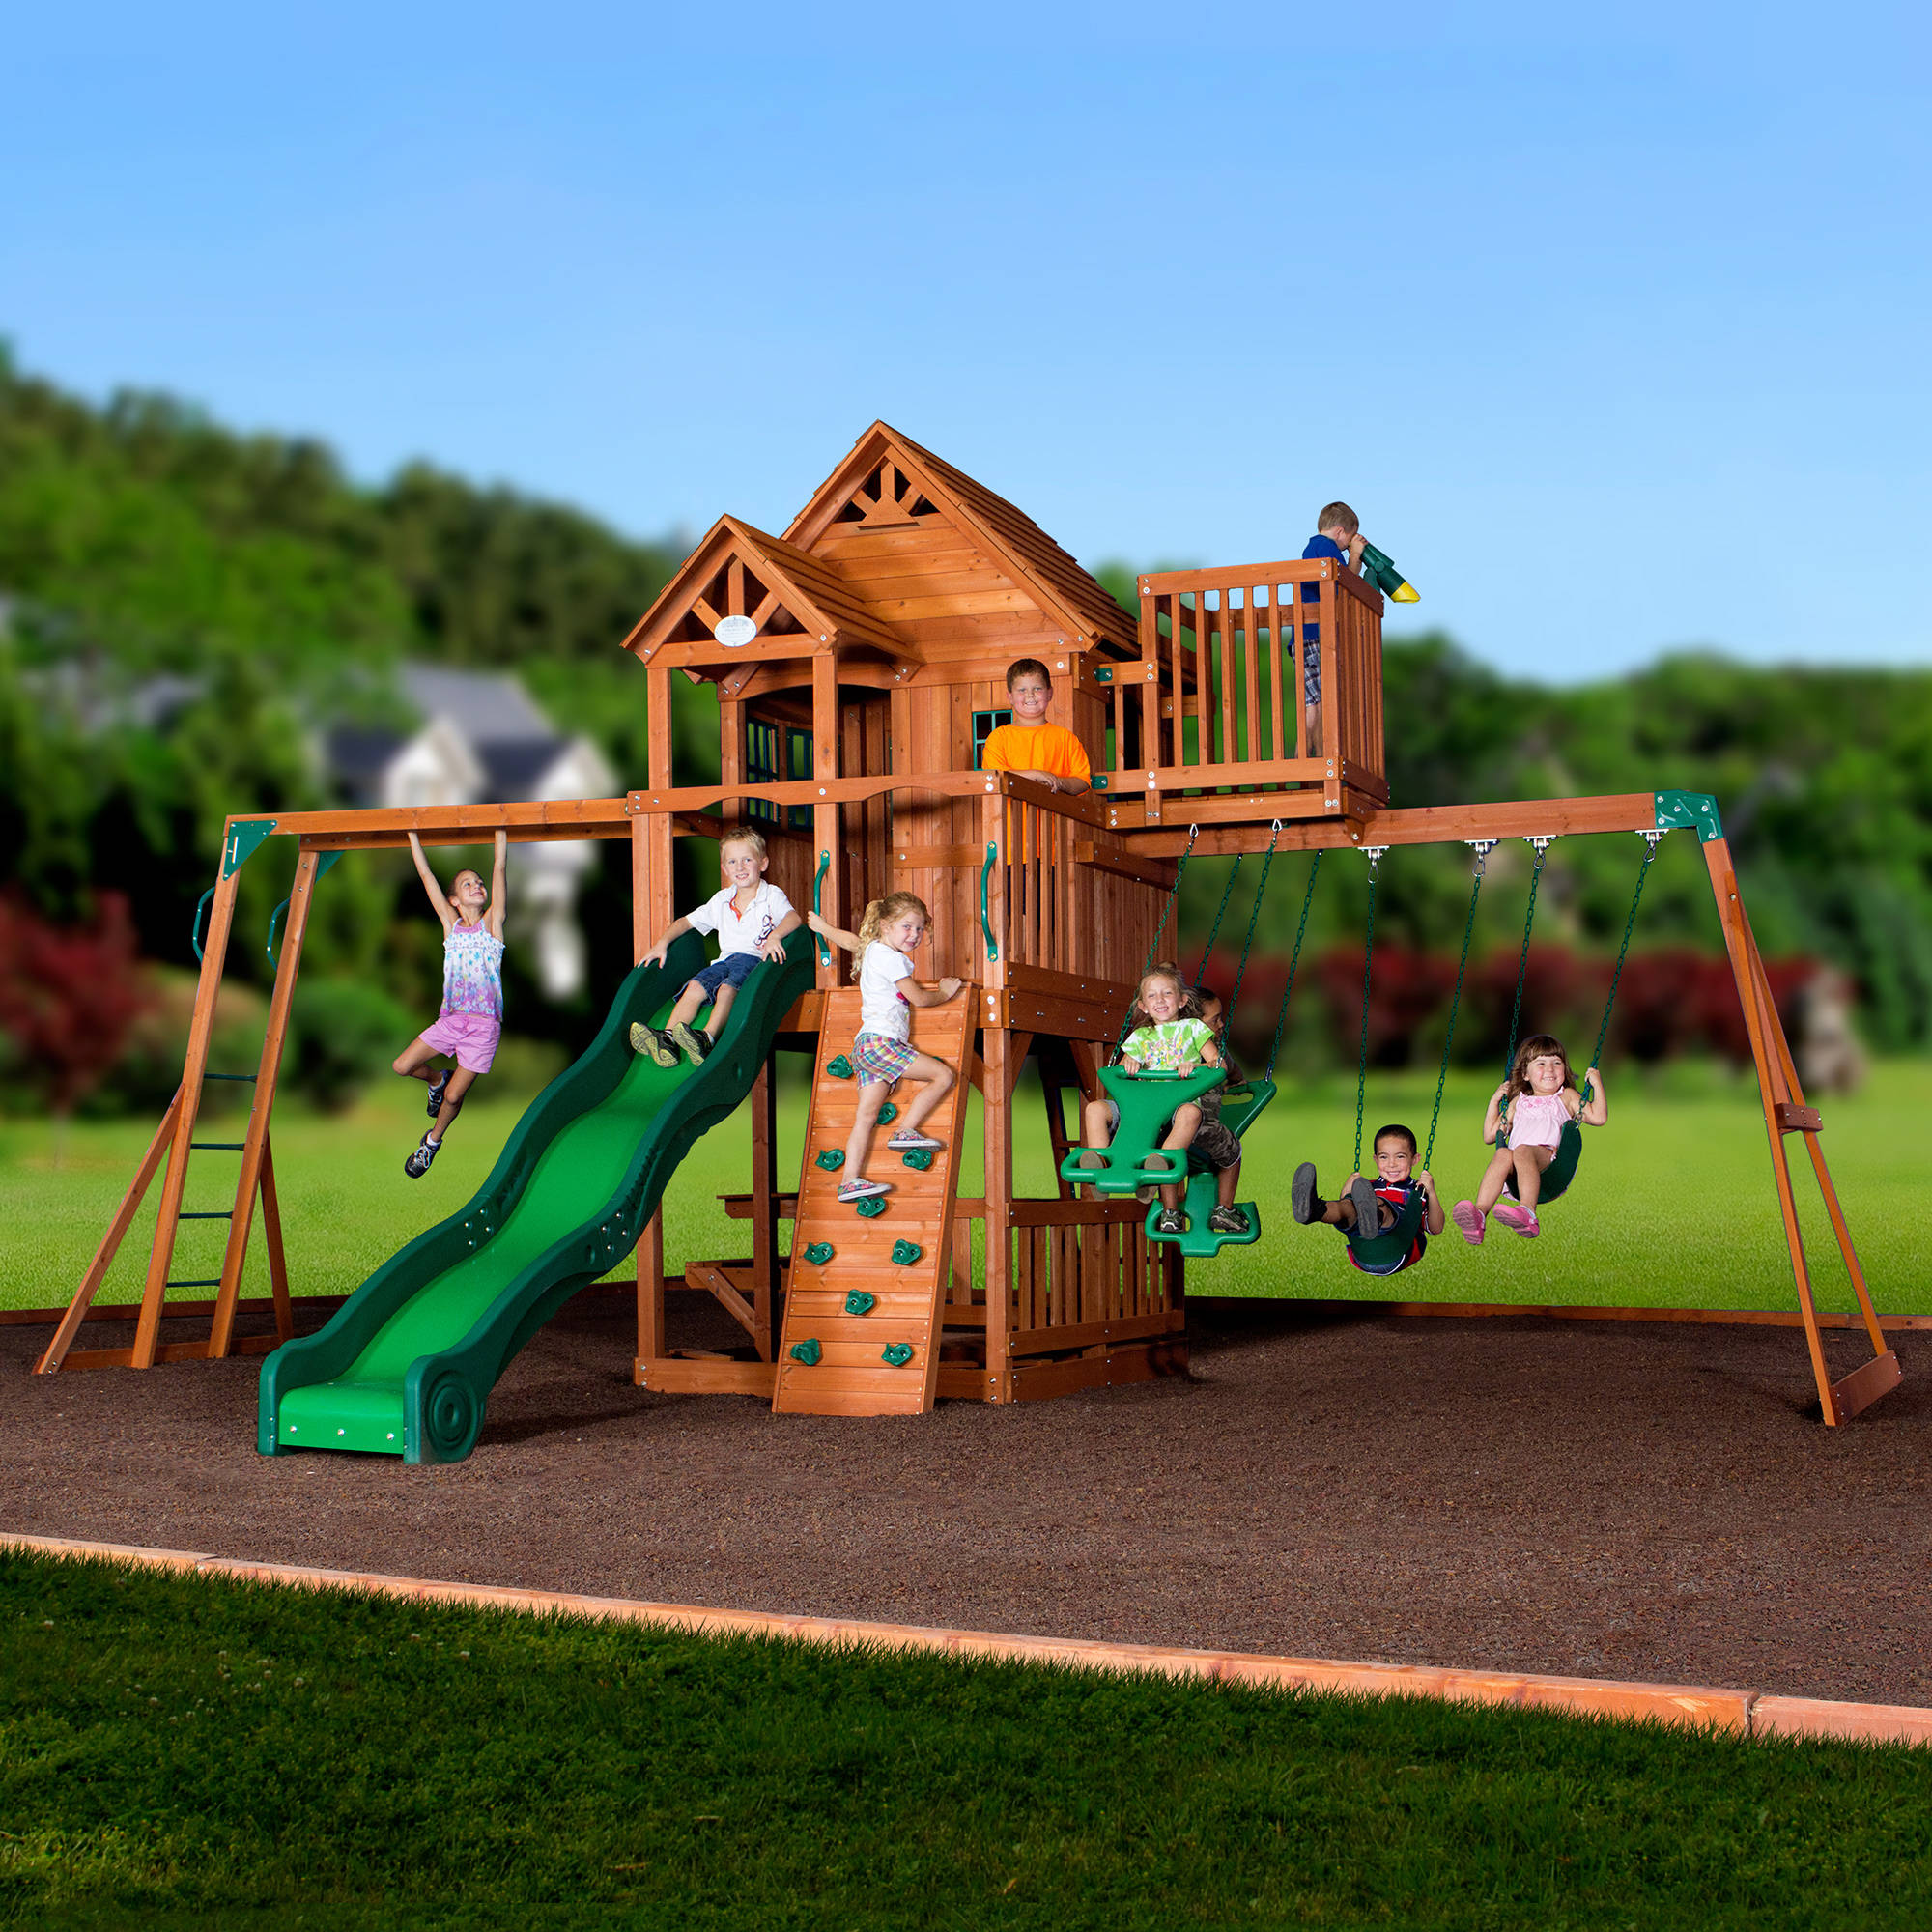 set children wooden playing two young play free picture their people with swing sets kids